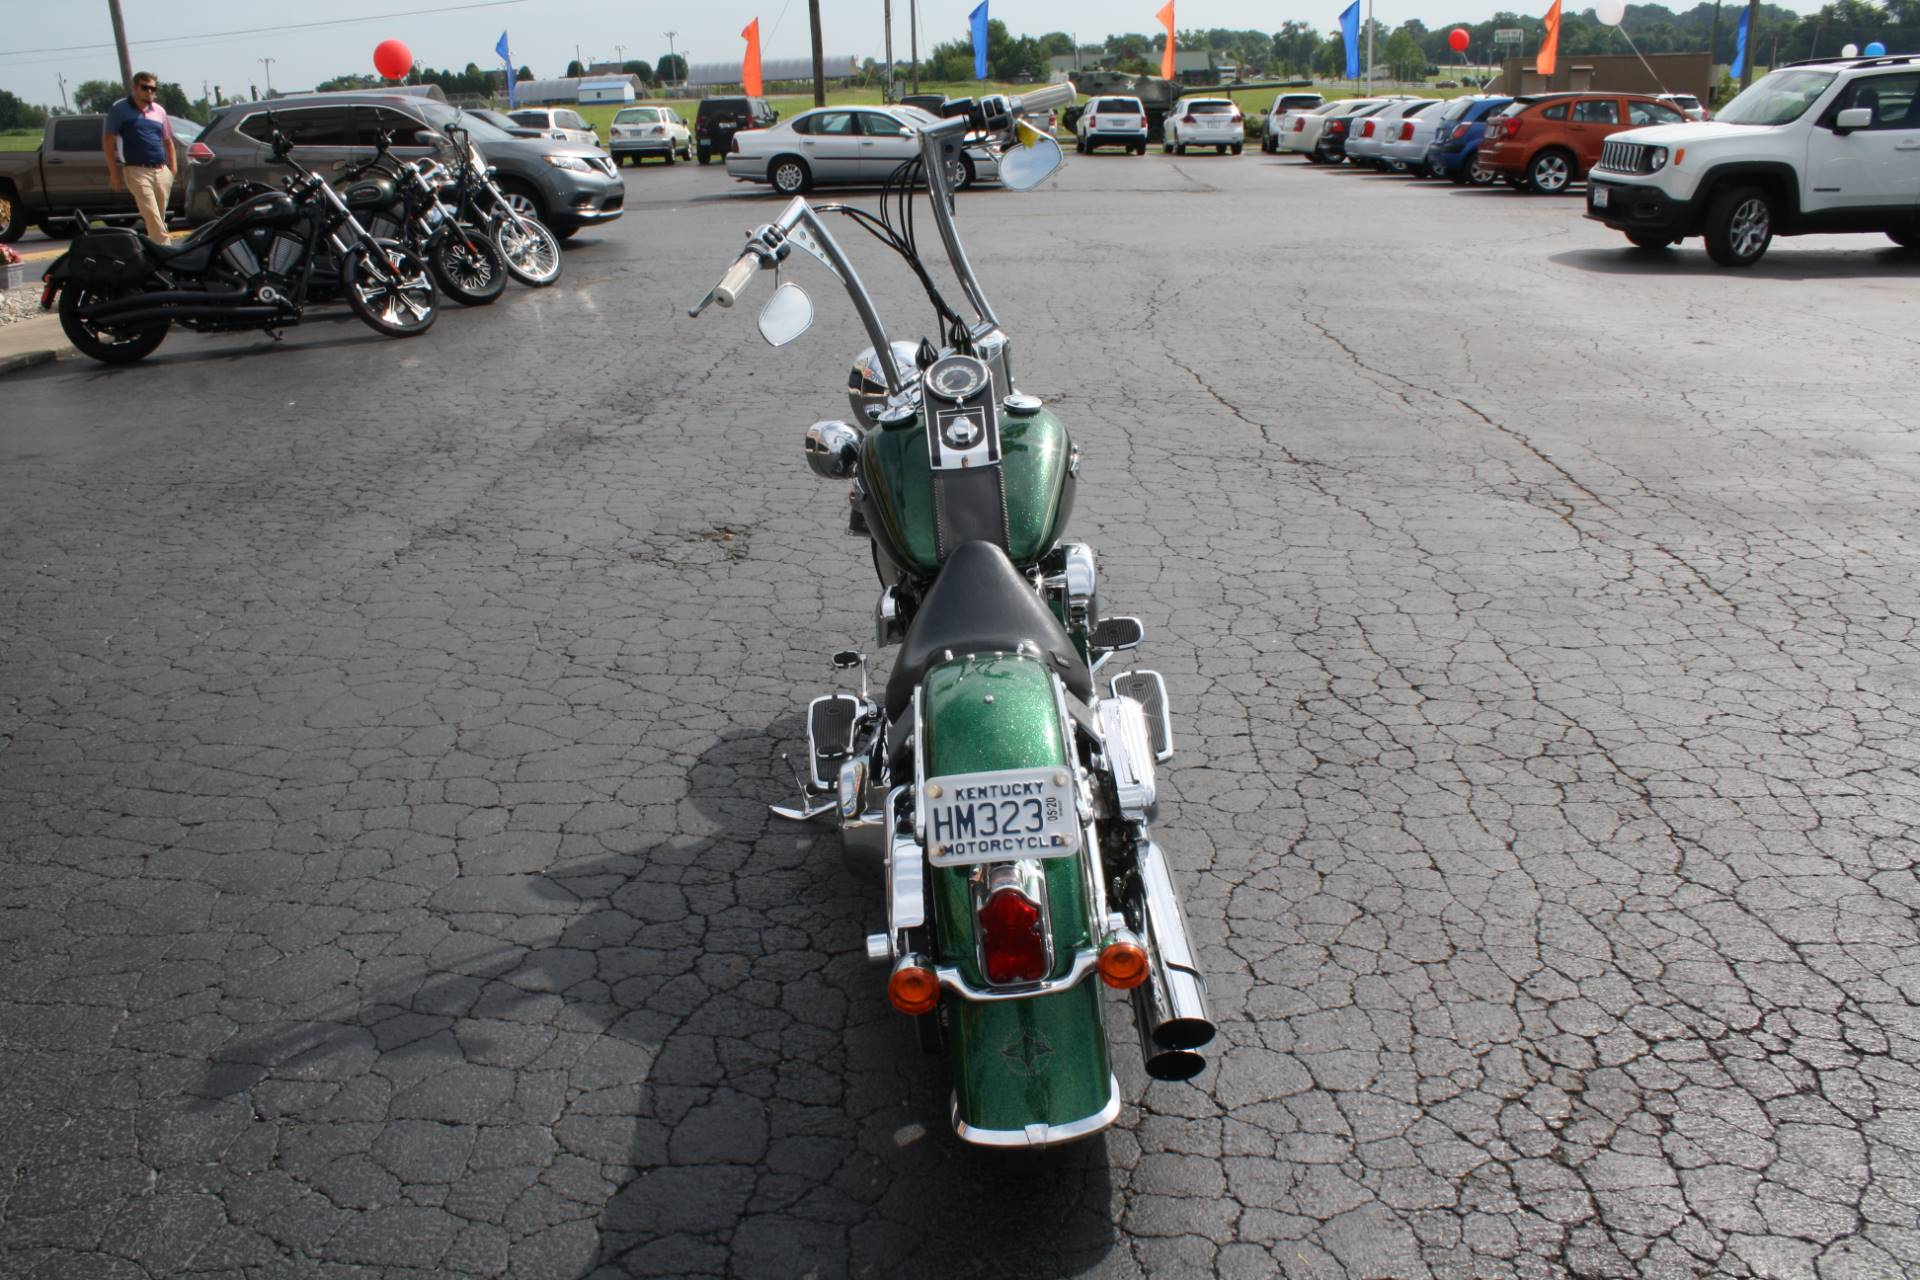 2013 Harley Davidson  Deluxe in Campbellsville, Kentucky - Photo 4